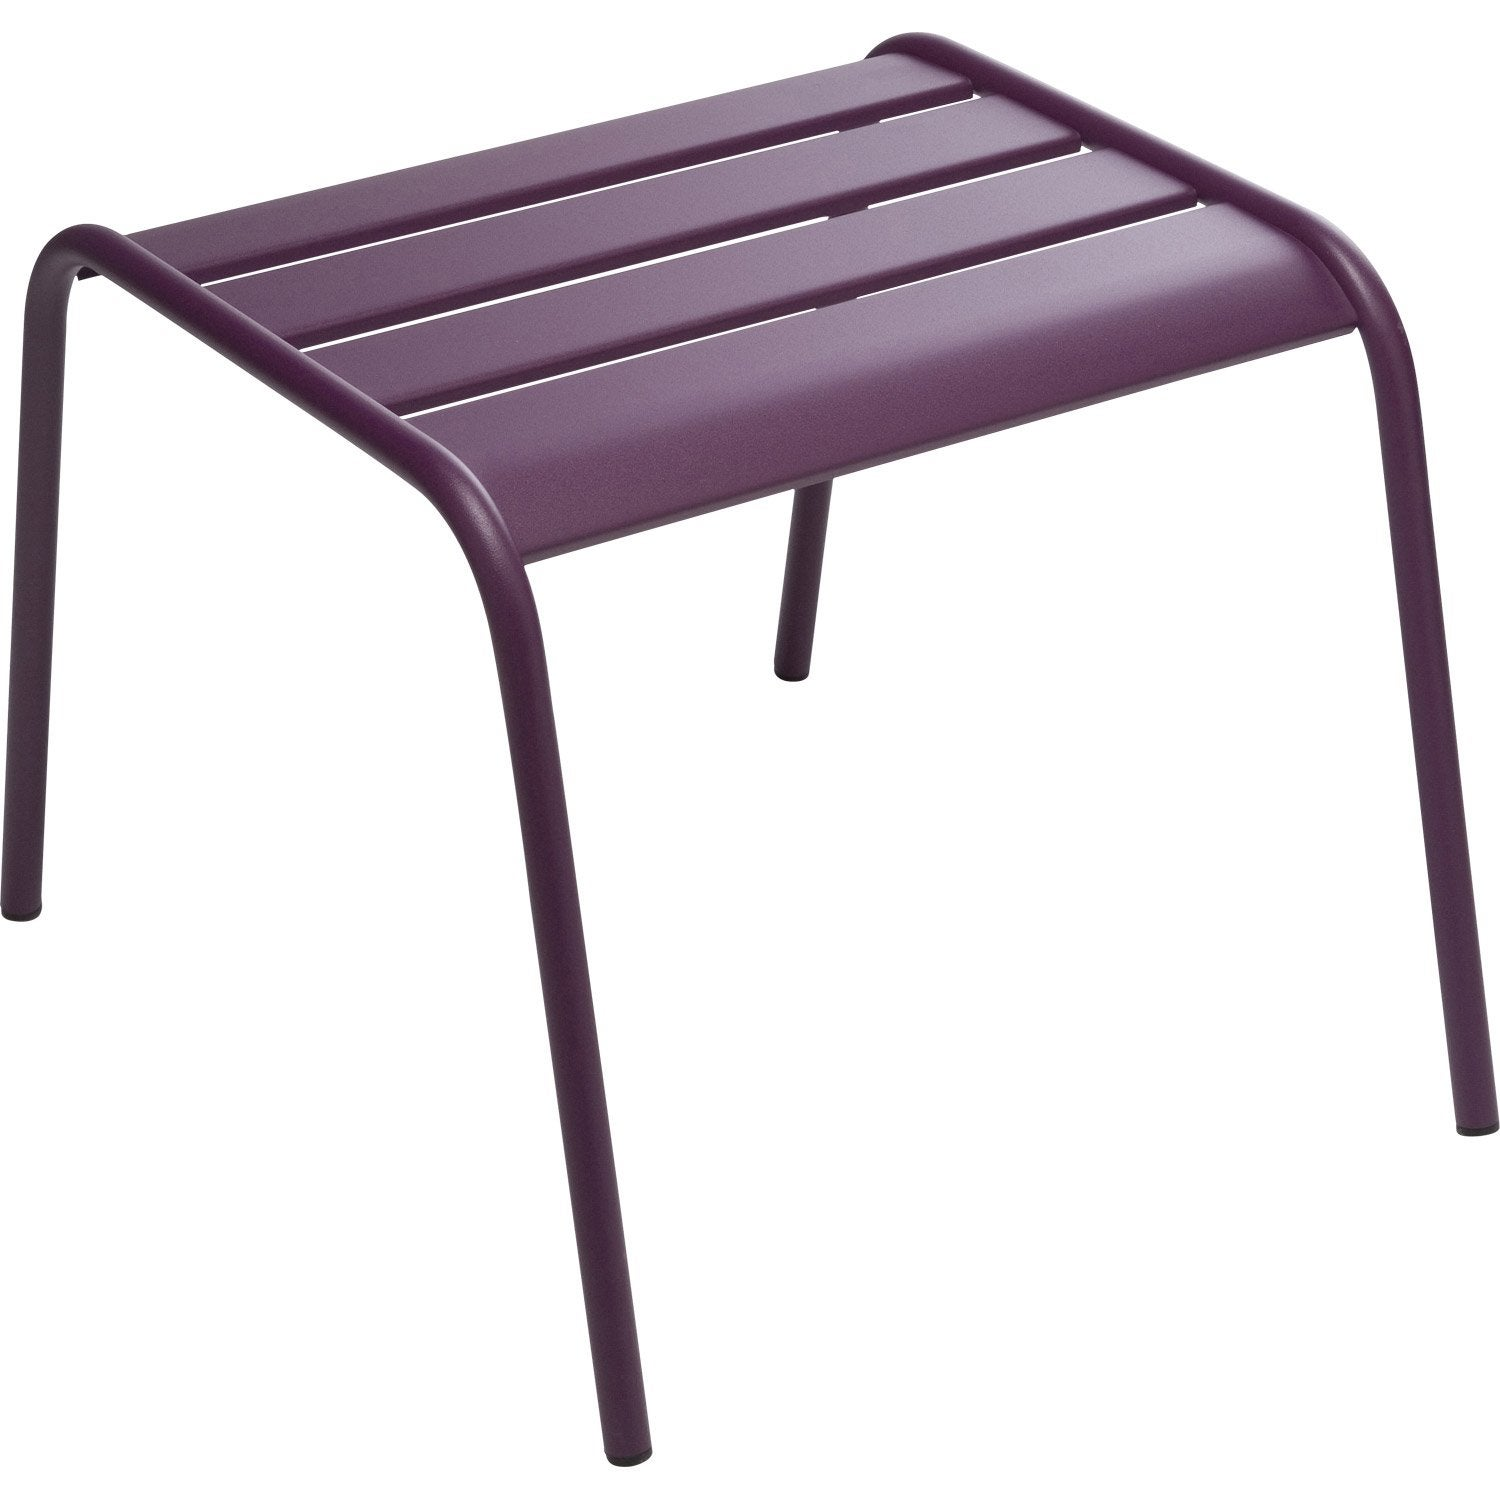 Table basse FERMOB Monceau rectangulaire aubergine 2 personnes  Leroy Merlin -> Leroy Merlin Table Basse Rangement